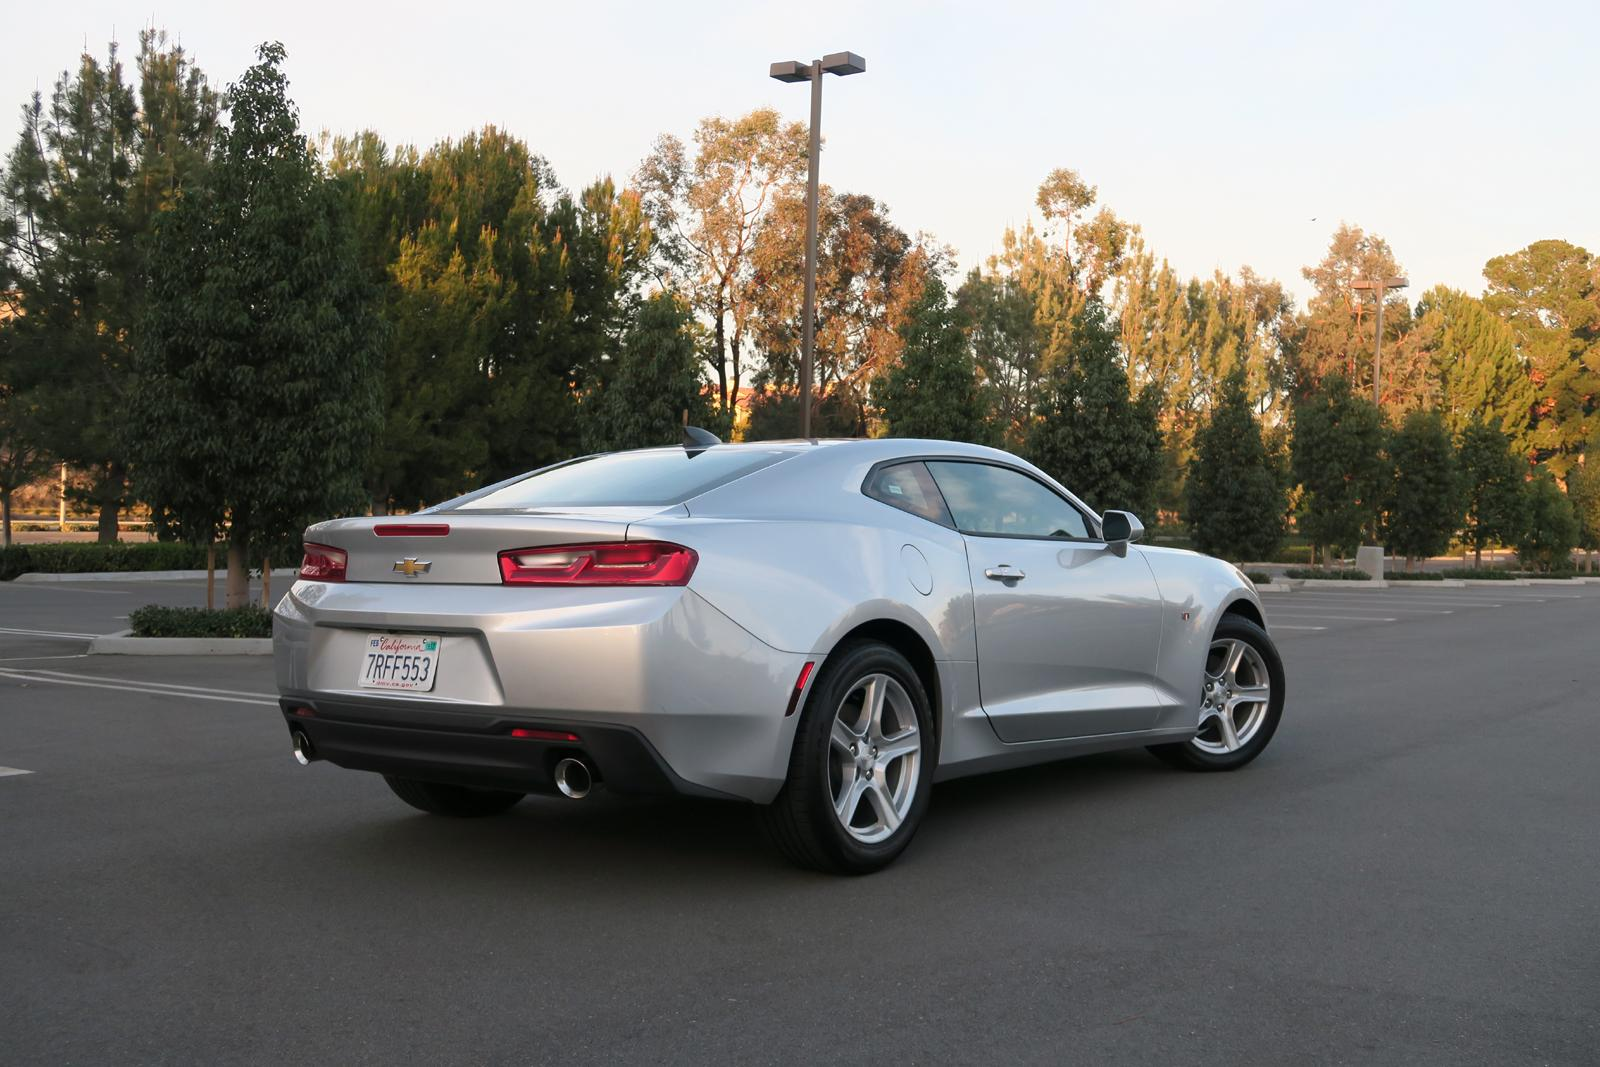 Road Tested: 2016 Chevrolet Camaro V6 | YouWheel - Your Car Expert